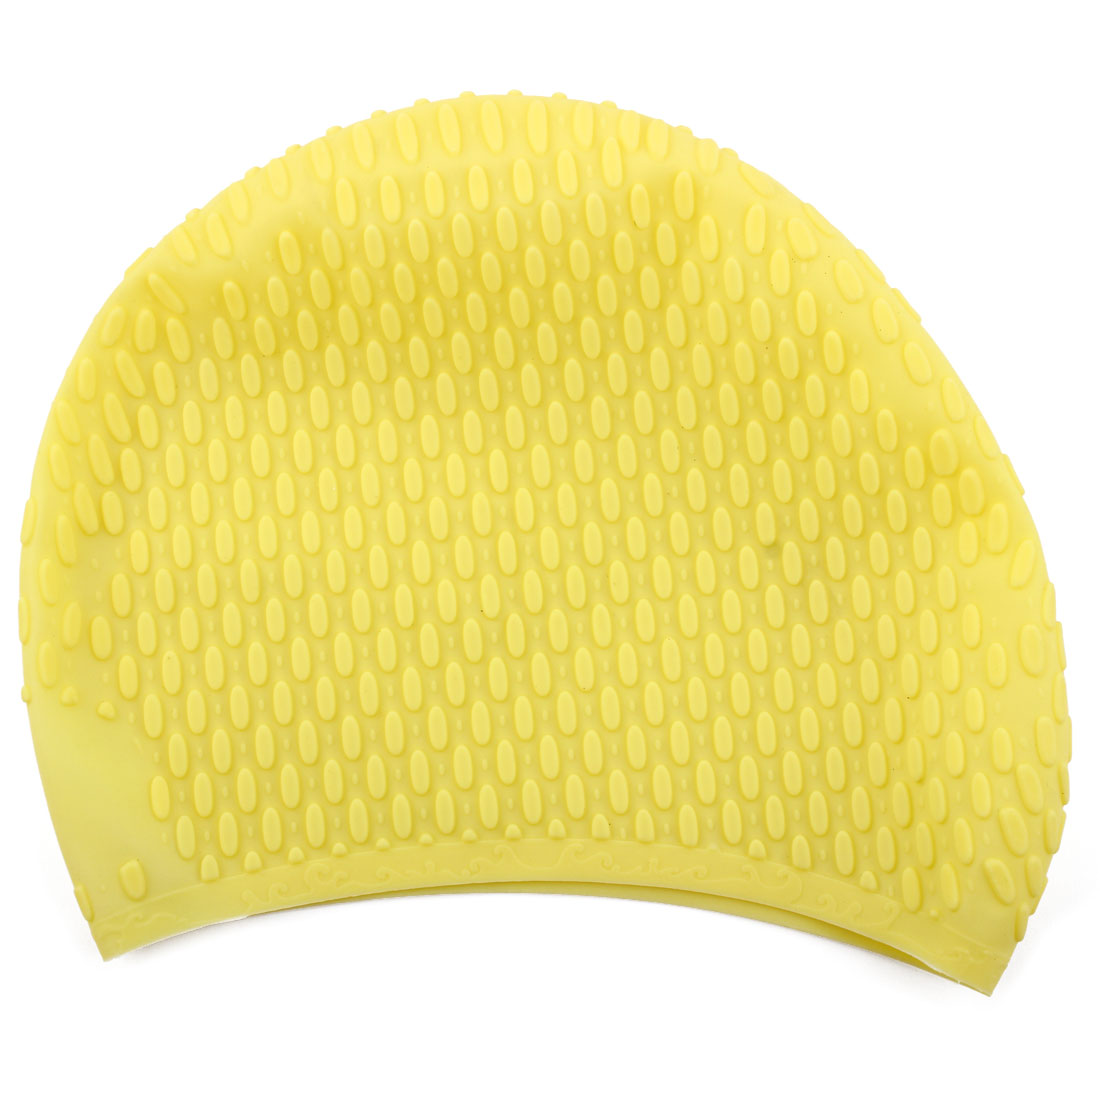 Adult Unisex Silicone Dome Shape Anti-slip Elastic Swimming Cap Underwater Bathing Hat Yellow